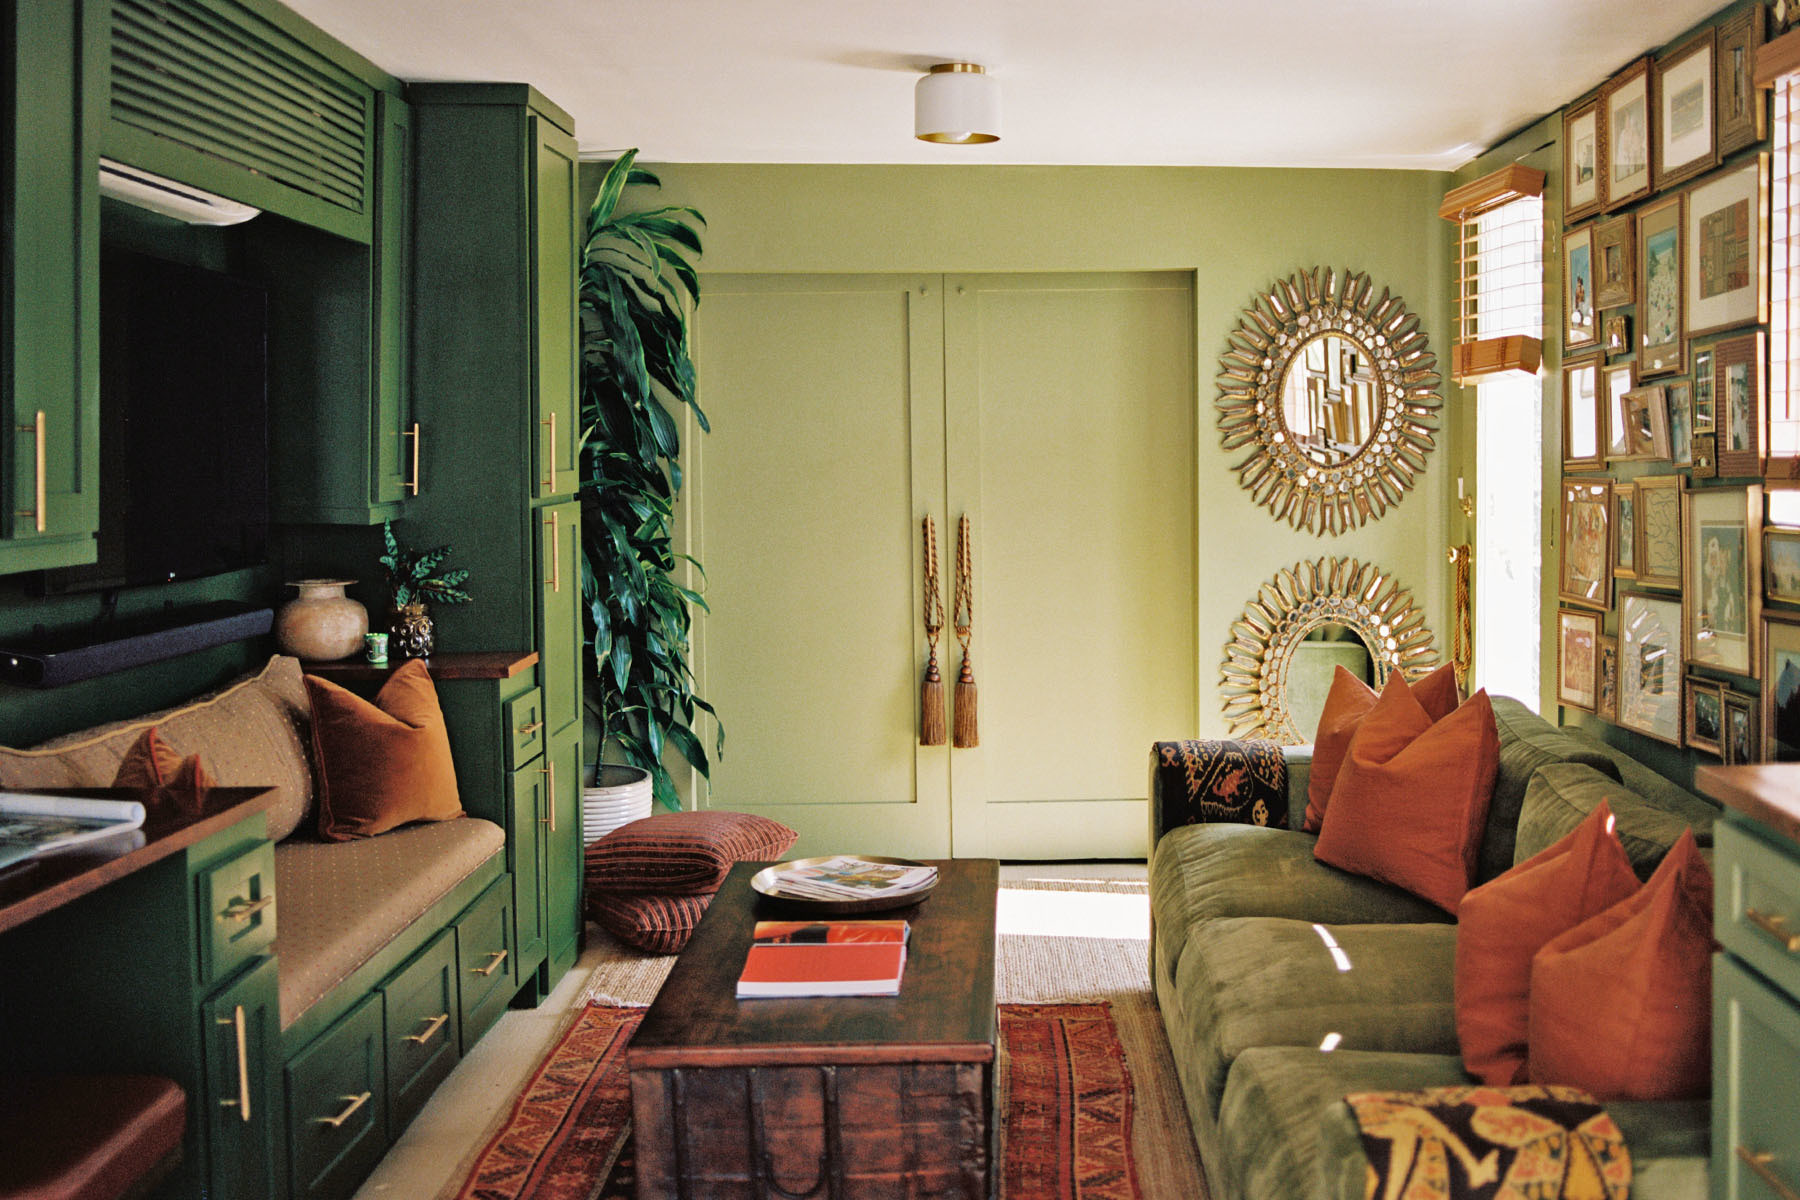 Stylist Courtney Madison's converted green pool house serves as a welcome retreat from the L.A. heat. Behr Paint | Behr Accent Wall | Total Design Furniture Custom Sofa | Vintage Rug | Craigslist Coffee Table | Vintage Mirror | Custom Bench Seat | Goodwill Vintage Door Hangers | Repurposed Cabinetry | CB2 Hardware | CB2 Throw Pillows.